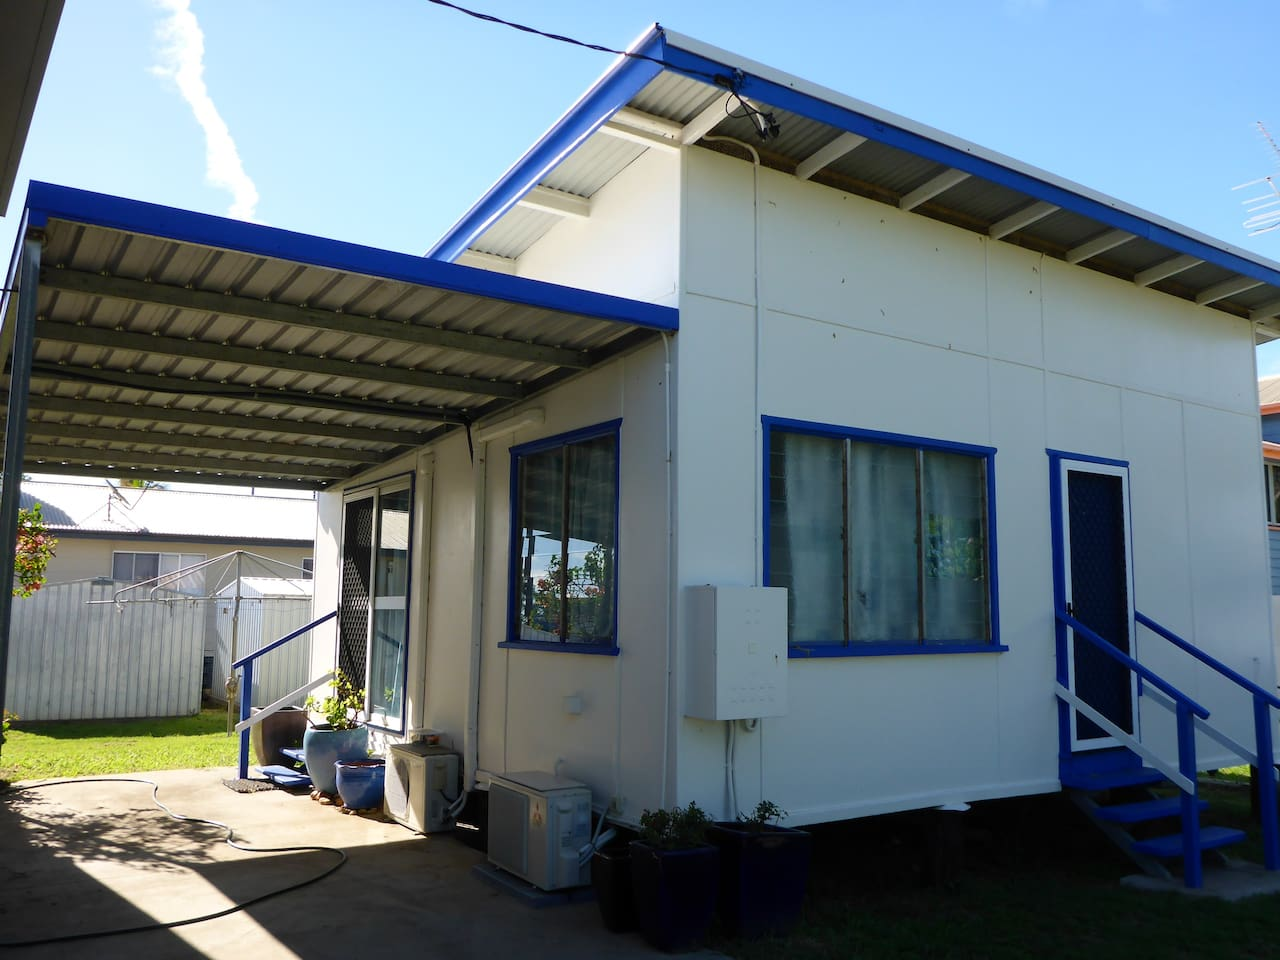 Carport and entry doors to Kitches Cabin - 2 bedrm, kitchen, bath/shr, 3 x split aircond. Free wifi internet